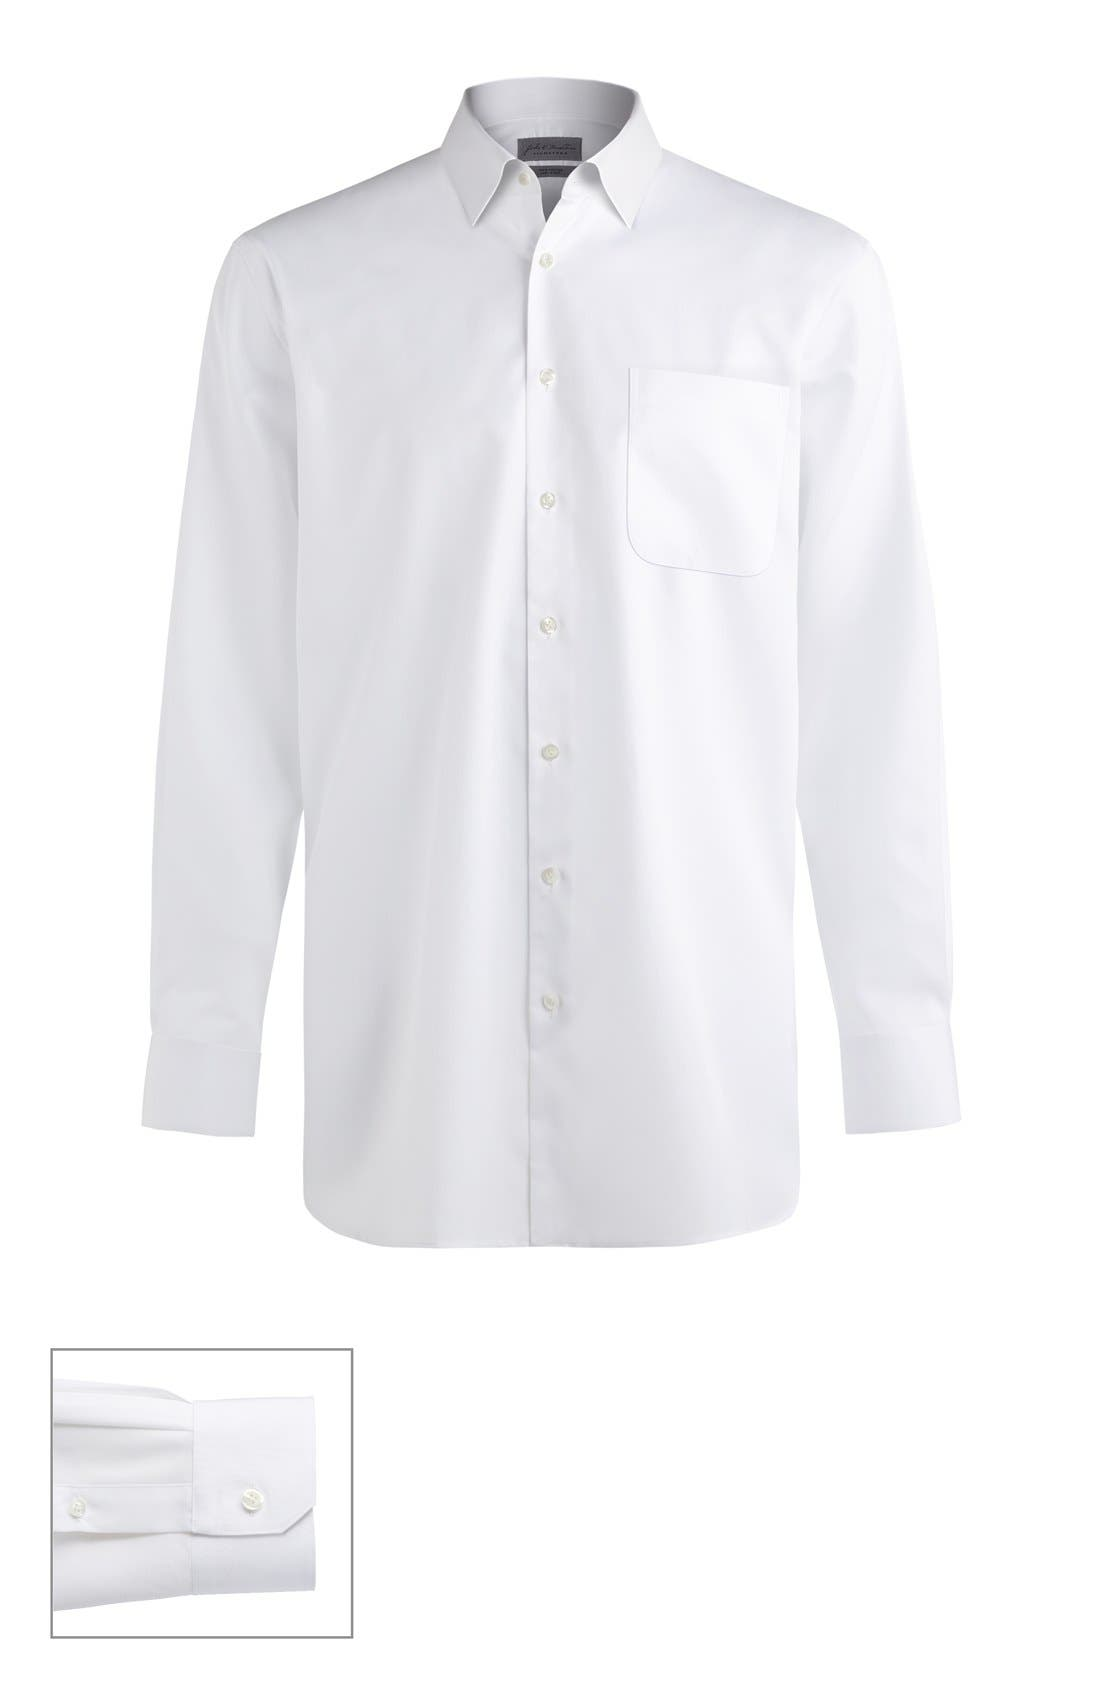 John W. Nordstrom® Made to Measure Classic Fit Straight Collar Solid Dress Shirt